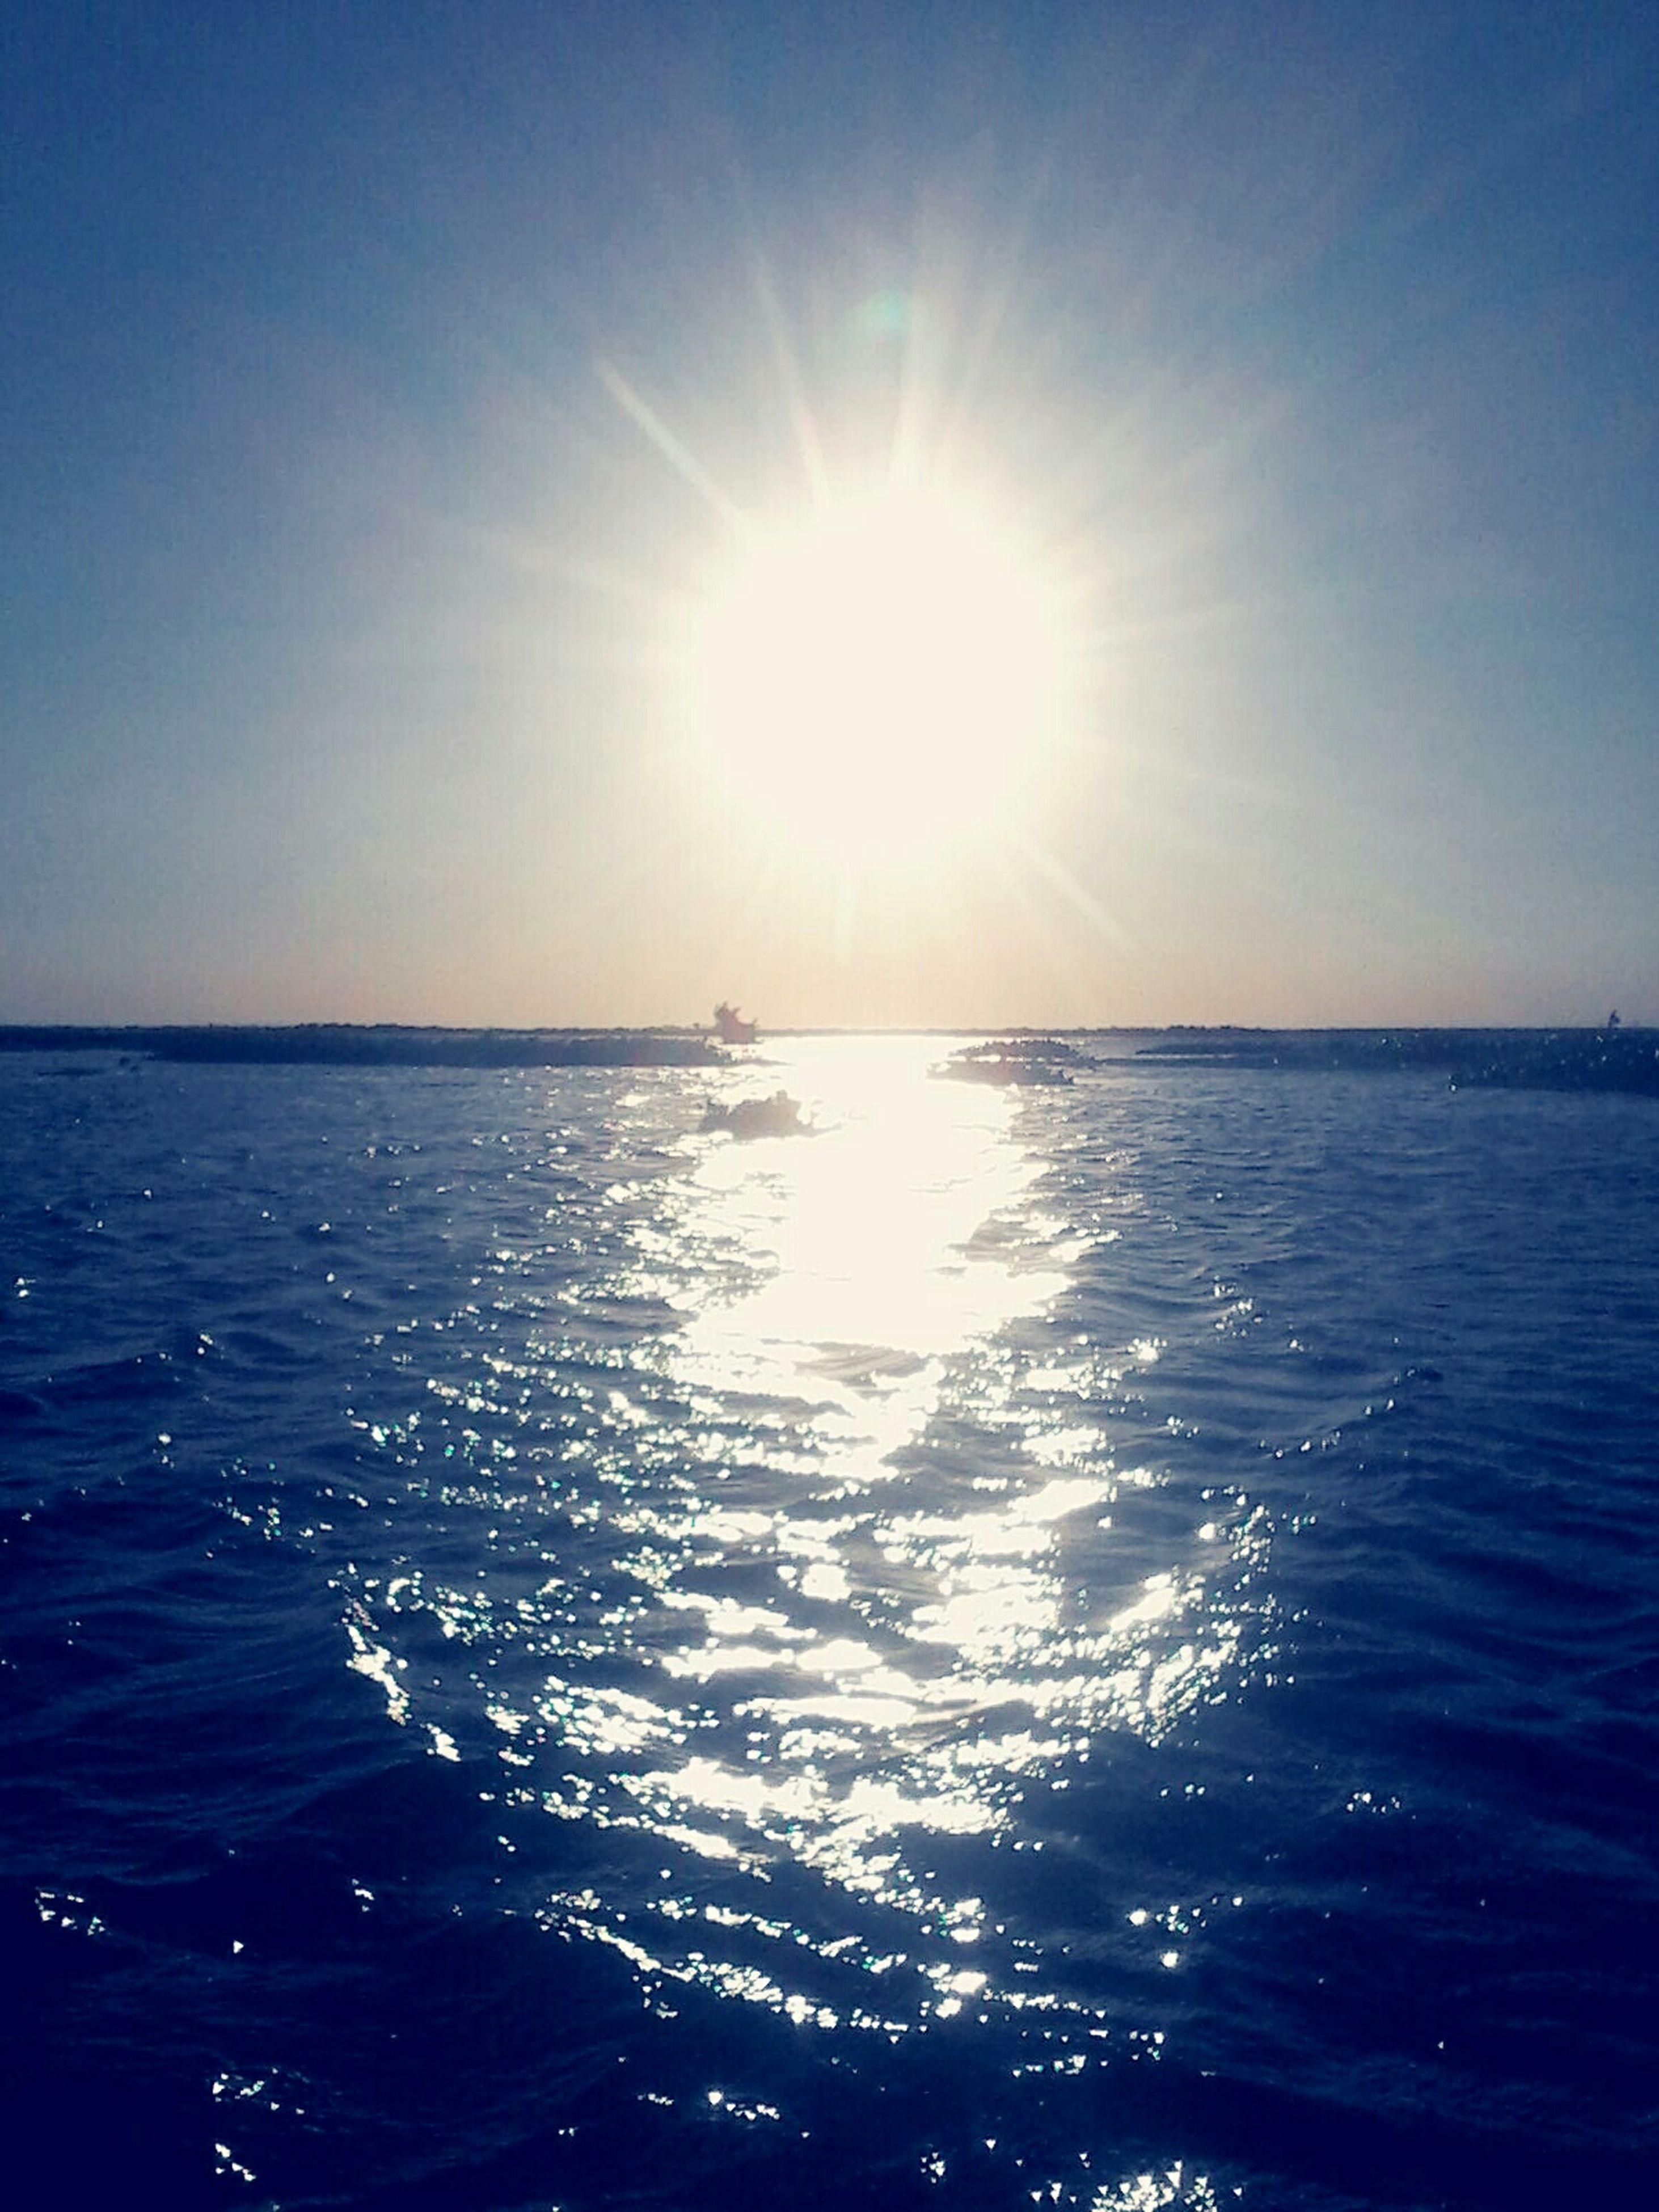 water, sea, sun, horizon over water, sunlight, waterfront, tranquility, scenics, tranquil scene, beauty in nature, blue, reflection, sunbeam, rippled, nature, clear sky, sky, lens flare, idyllic, sunny